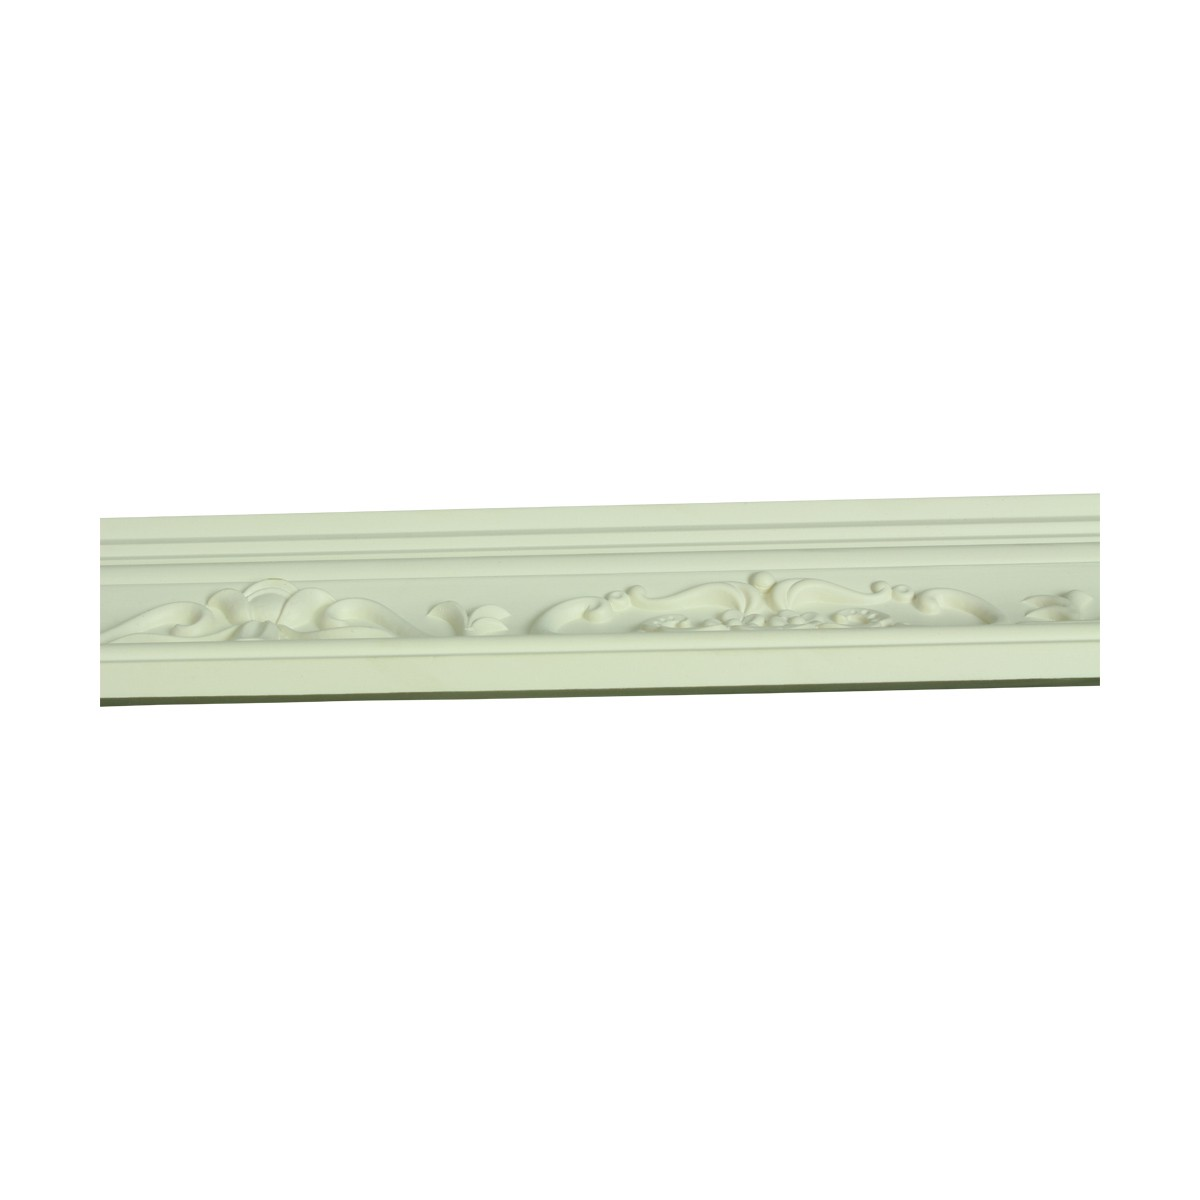 Renovators Supply Ornate Cornice White Urethane Amaryllis Design 12 Pieces Totaling 1128 Length White PrePrimed Urethane Crown Cornice Molding Cornice Crown Home Depot Ekena Millwork Molding Wall Ceiling Corner Cornice Crown Cove Molding